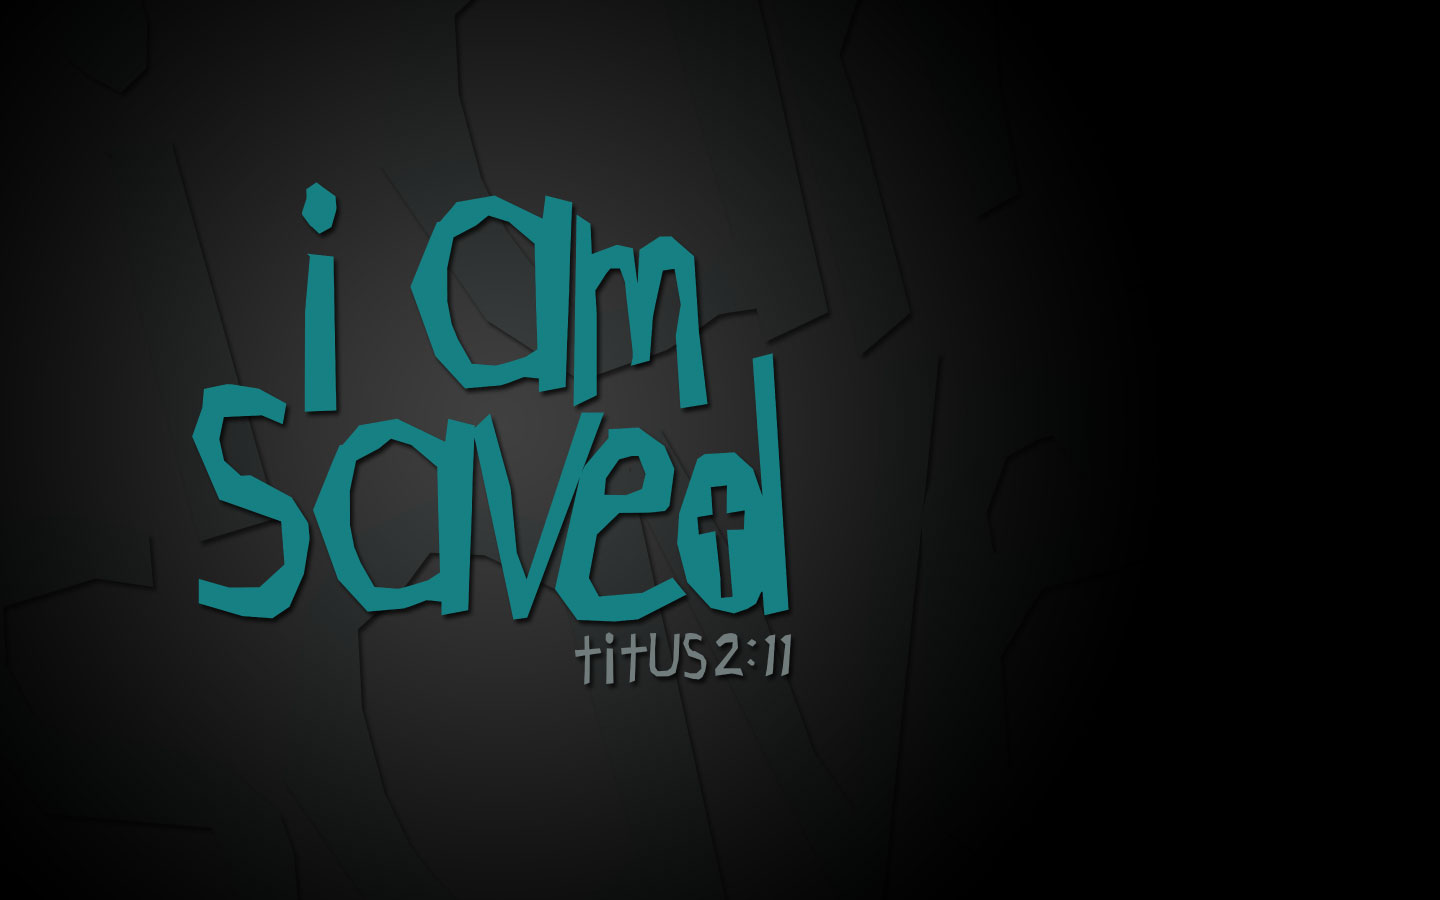 Titus 2 11 i am saved wallpaper christian wallpapers and backgrounds - Titus wallpaper ...